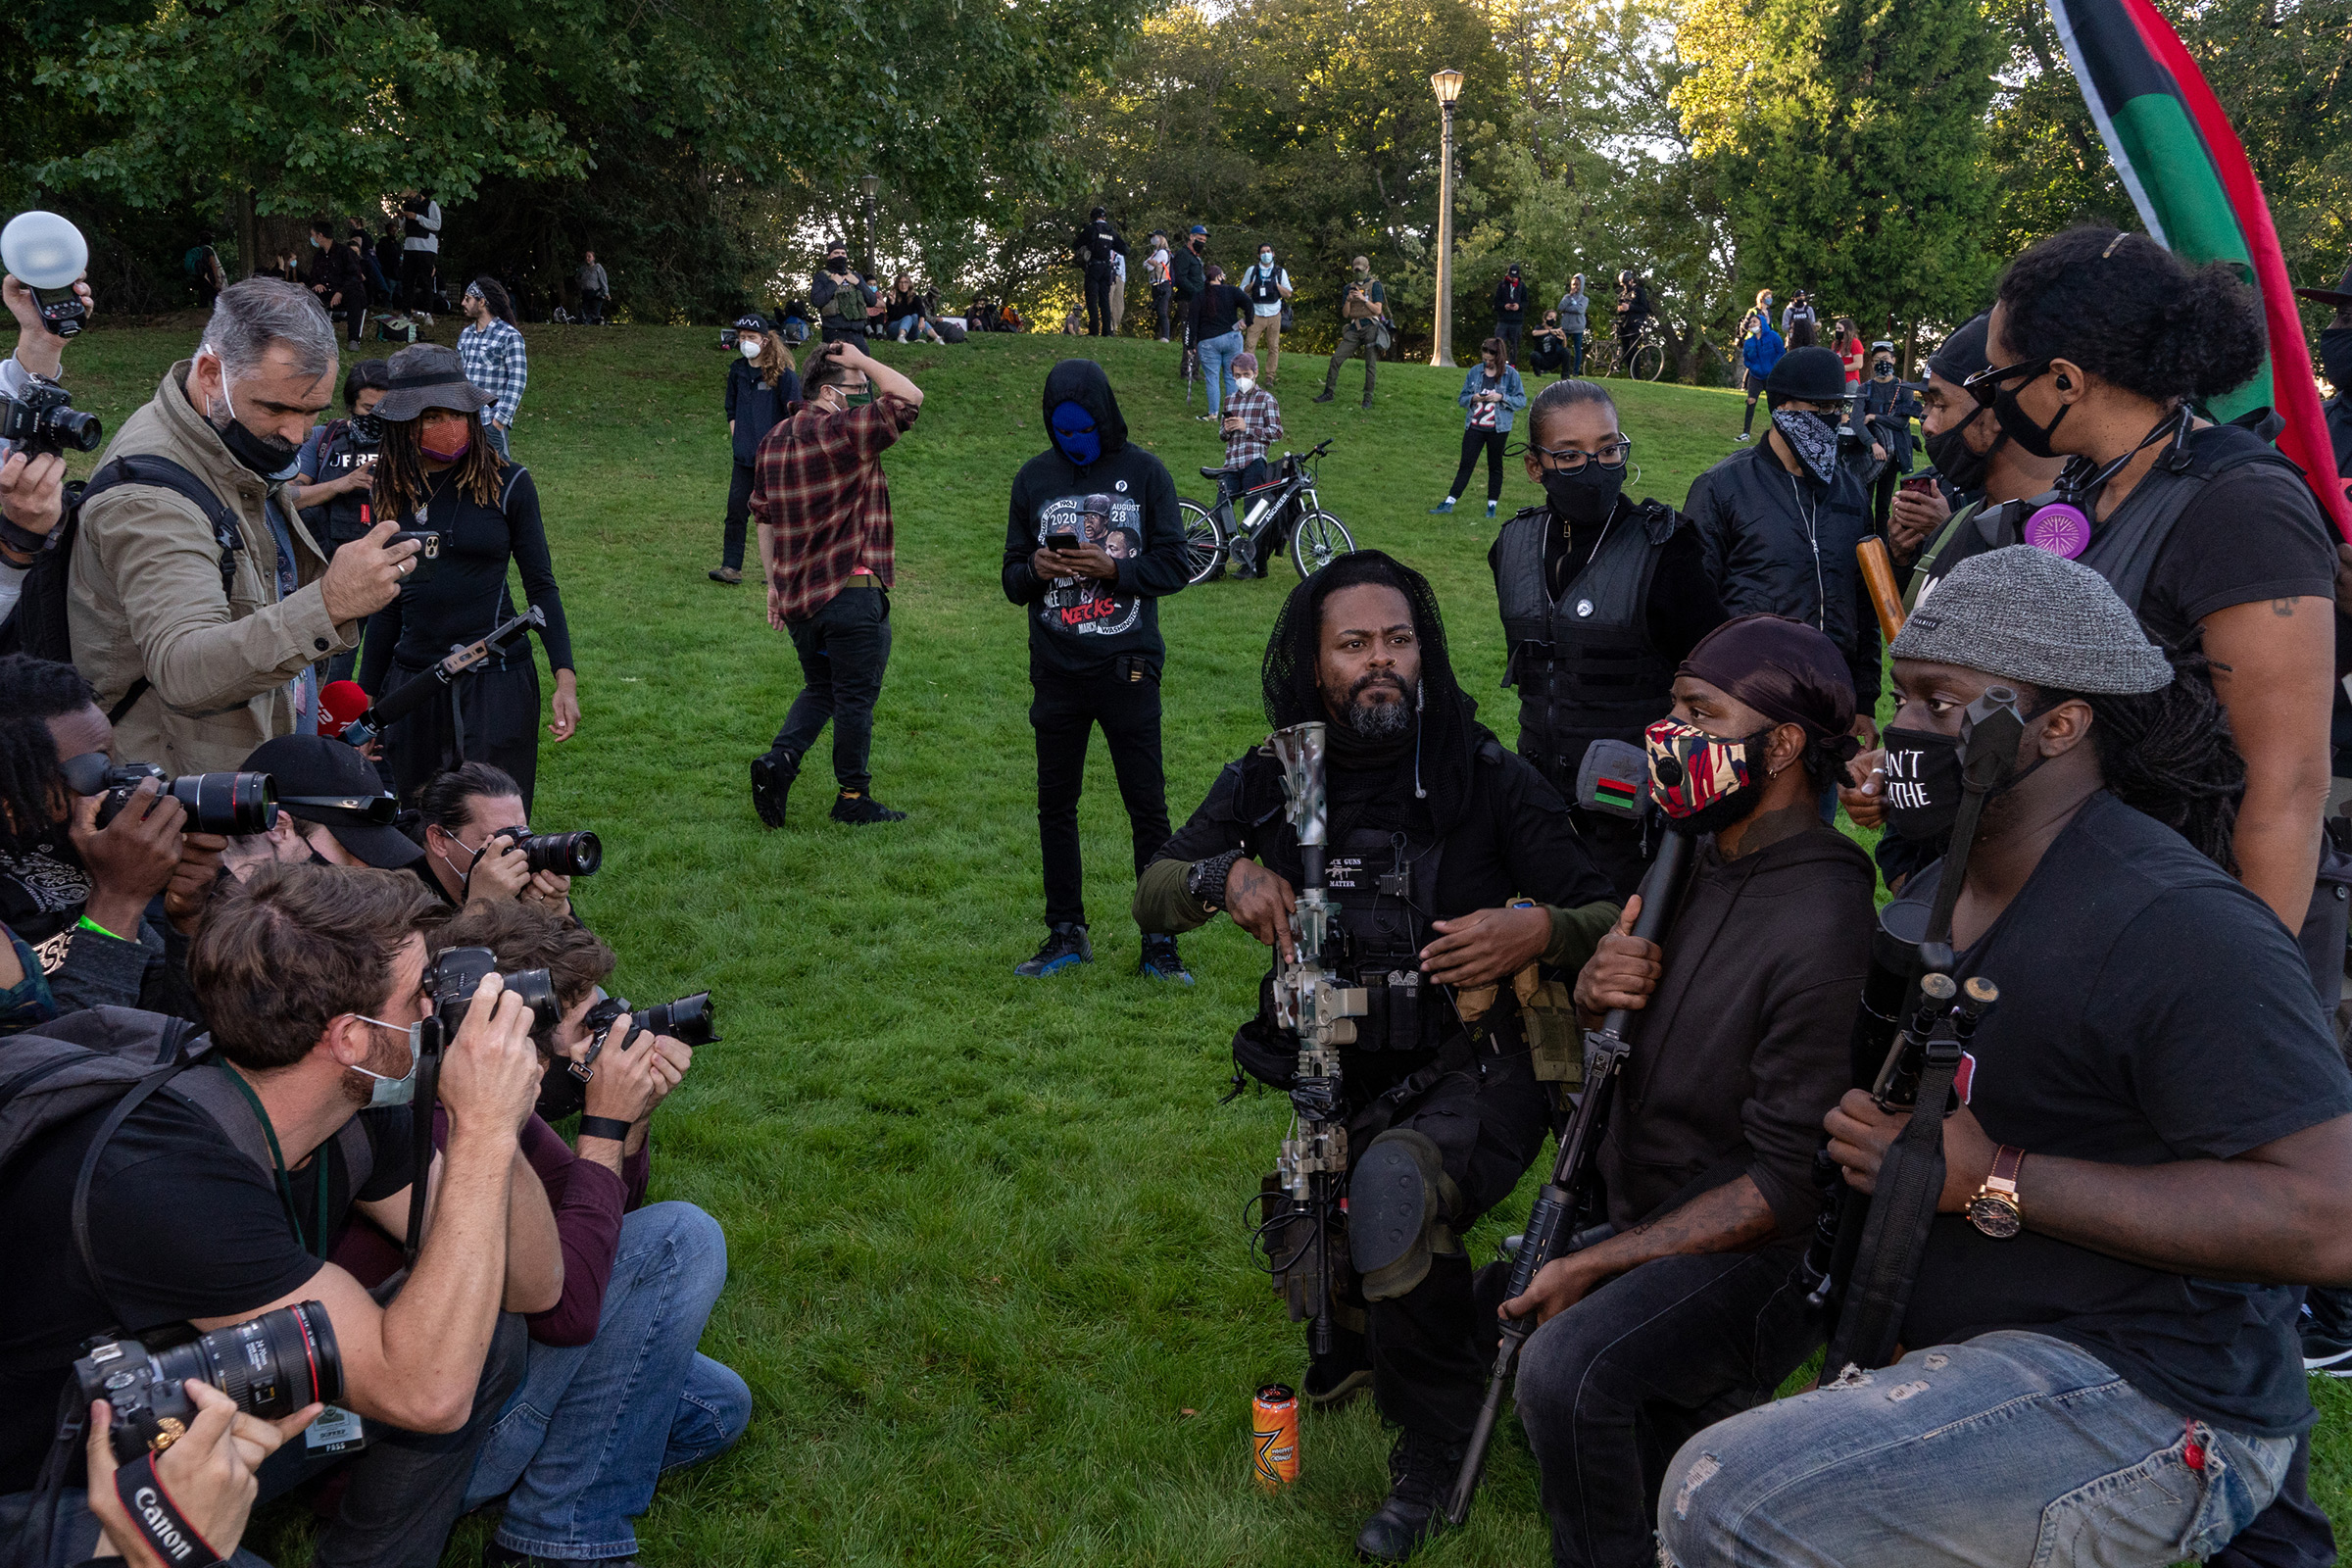 Portland, Ore., Sept. 26, 2020.  Militia members pose for the media at a Black Lives Matter protest. On the same day, in a nearby park, a Black Lives Matter rally dissolved into infighting. The situation was deescalated by this Black militia, which posed for photos.